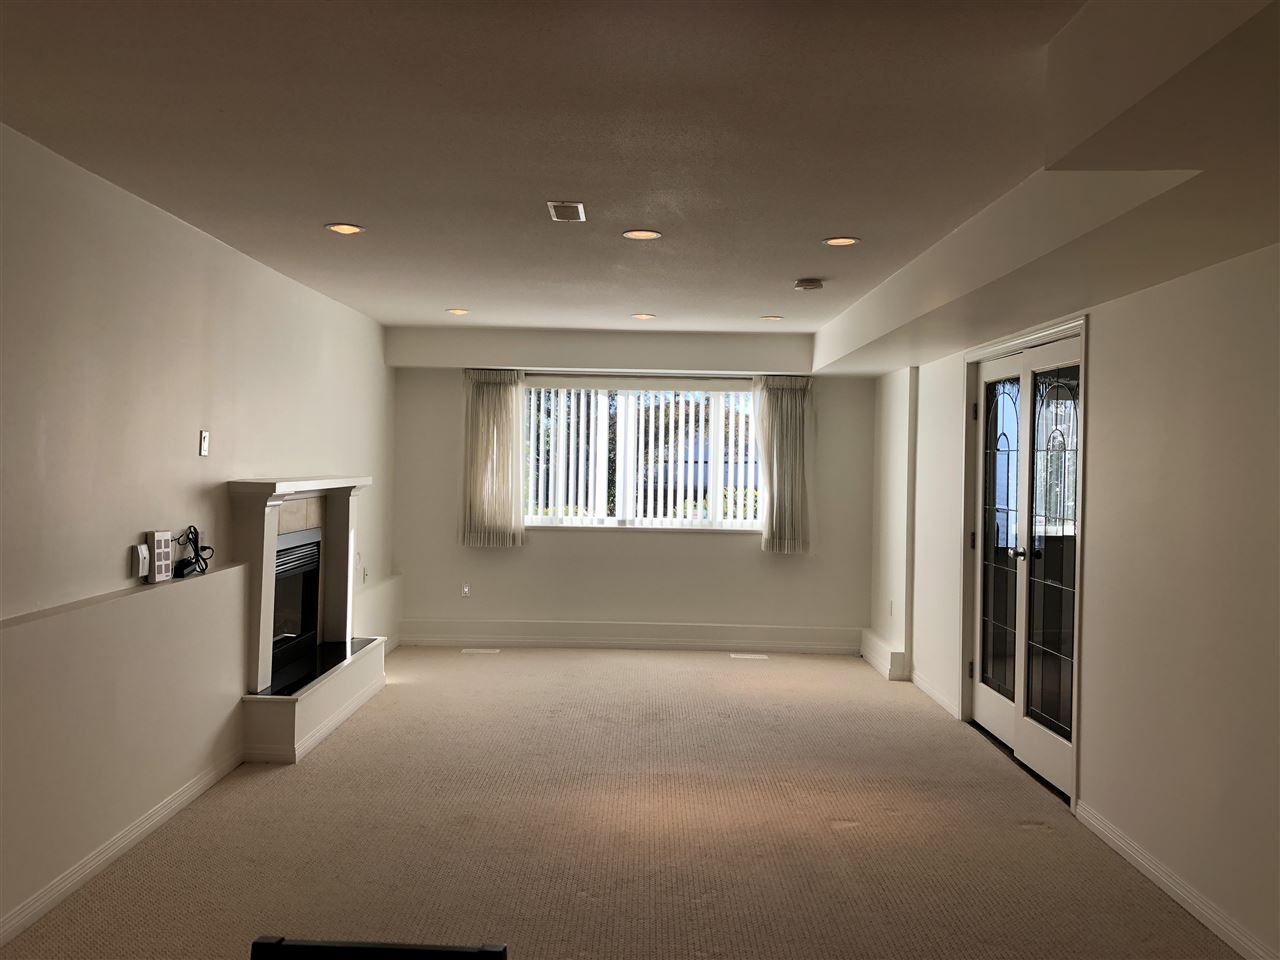 Photo 6: Photos: 3741 GEORGIA STREET in Burnaby: Willingdon Heights House for sale (Burnaby North)  : MLS®# R2314936